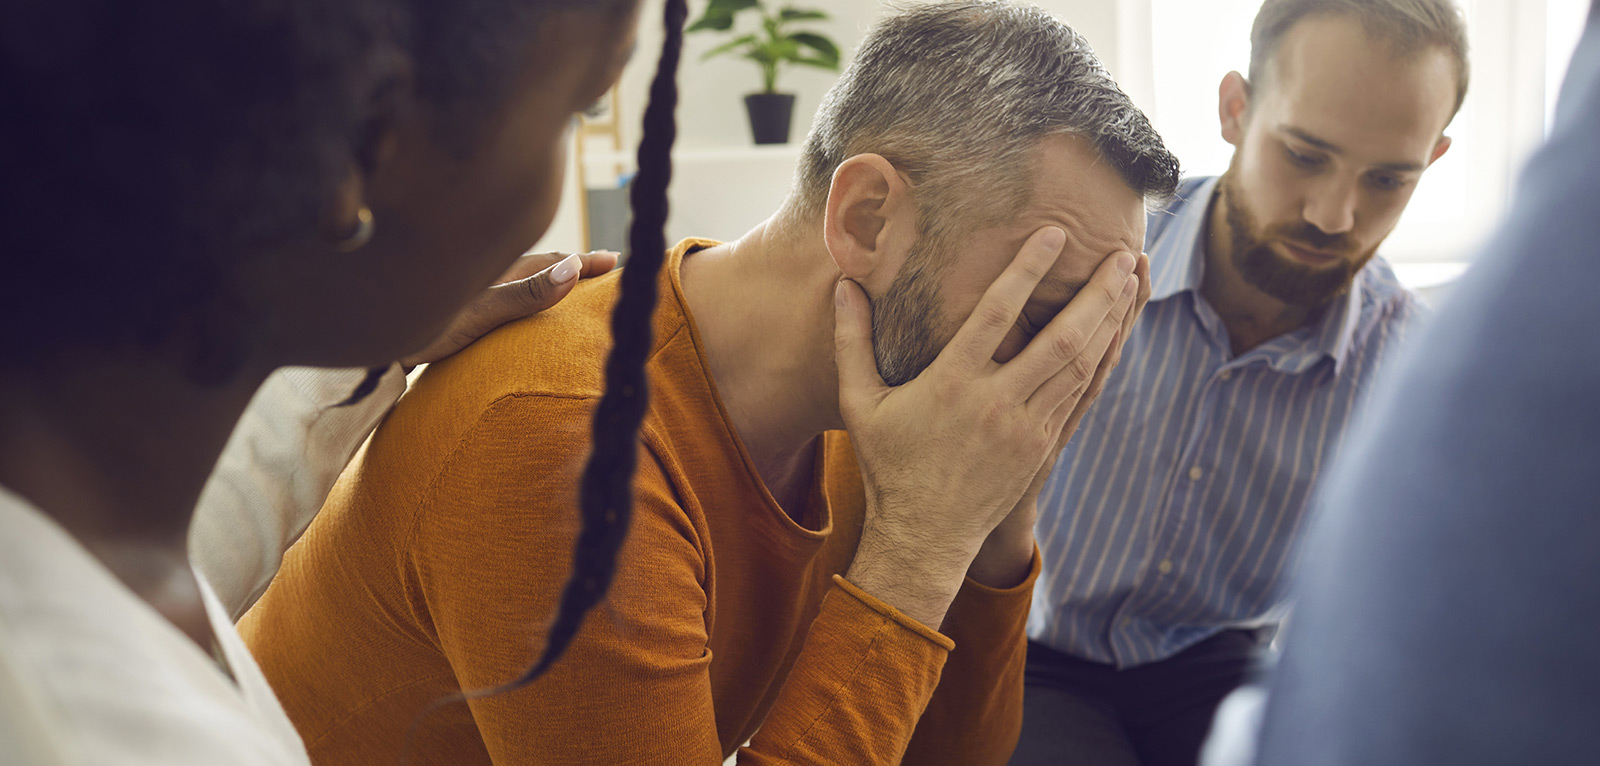 5 Tips for Fighting Compassion Fatigue